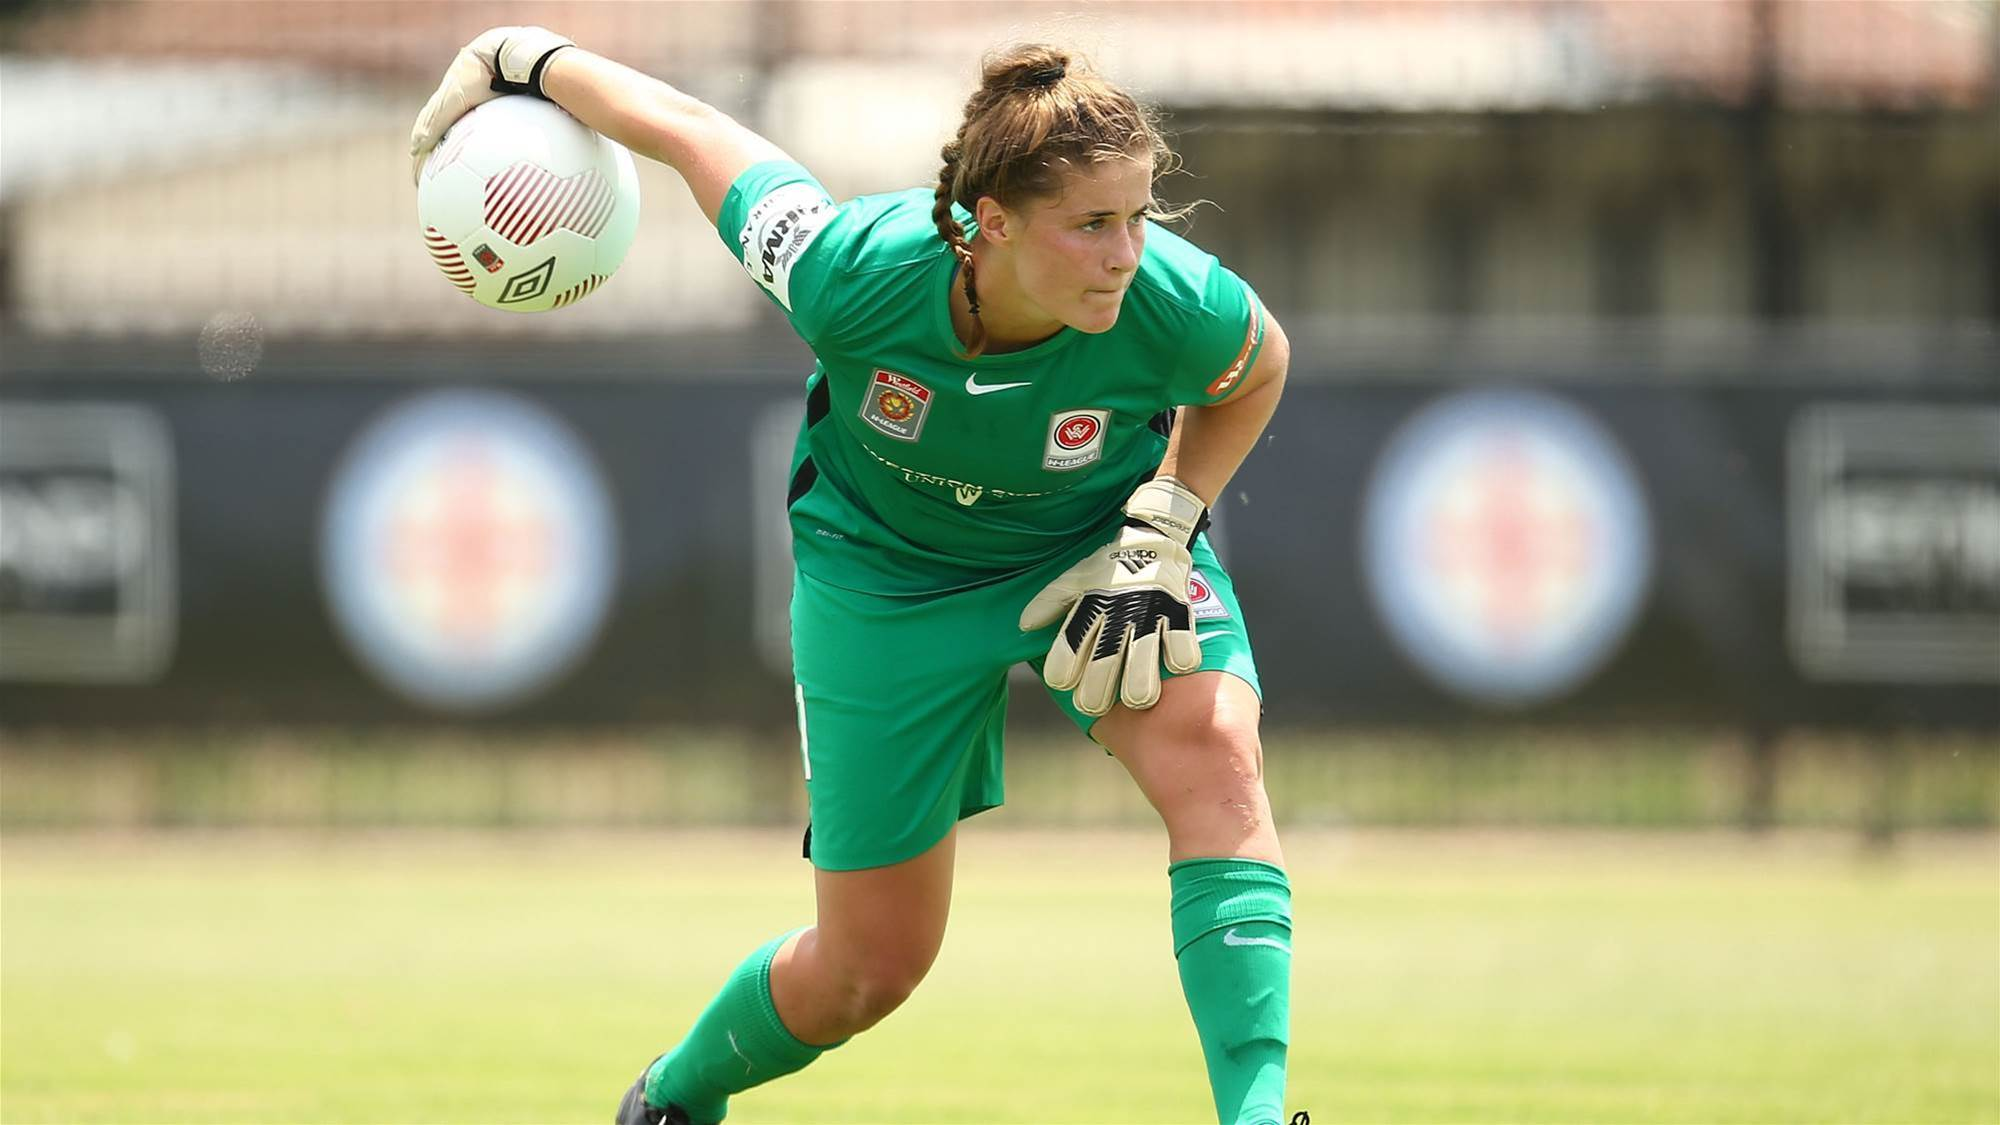 Micah taking Matildas opportunity with both hands